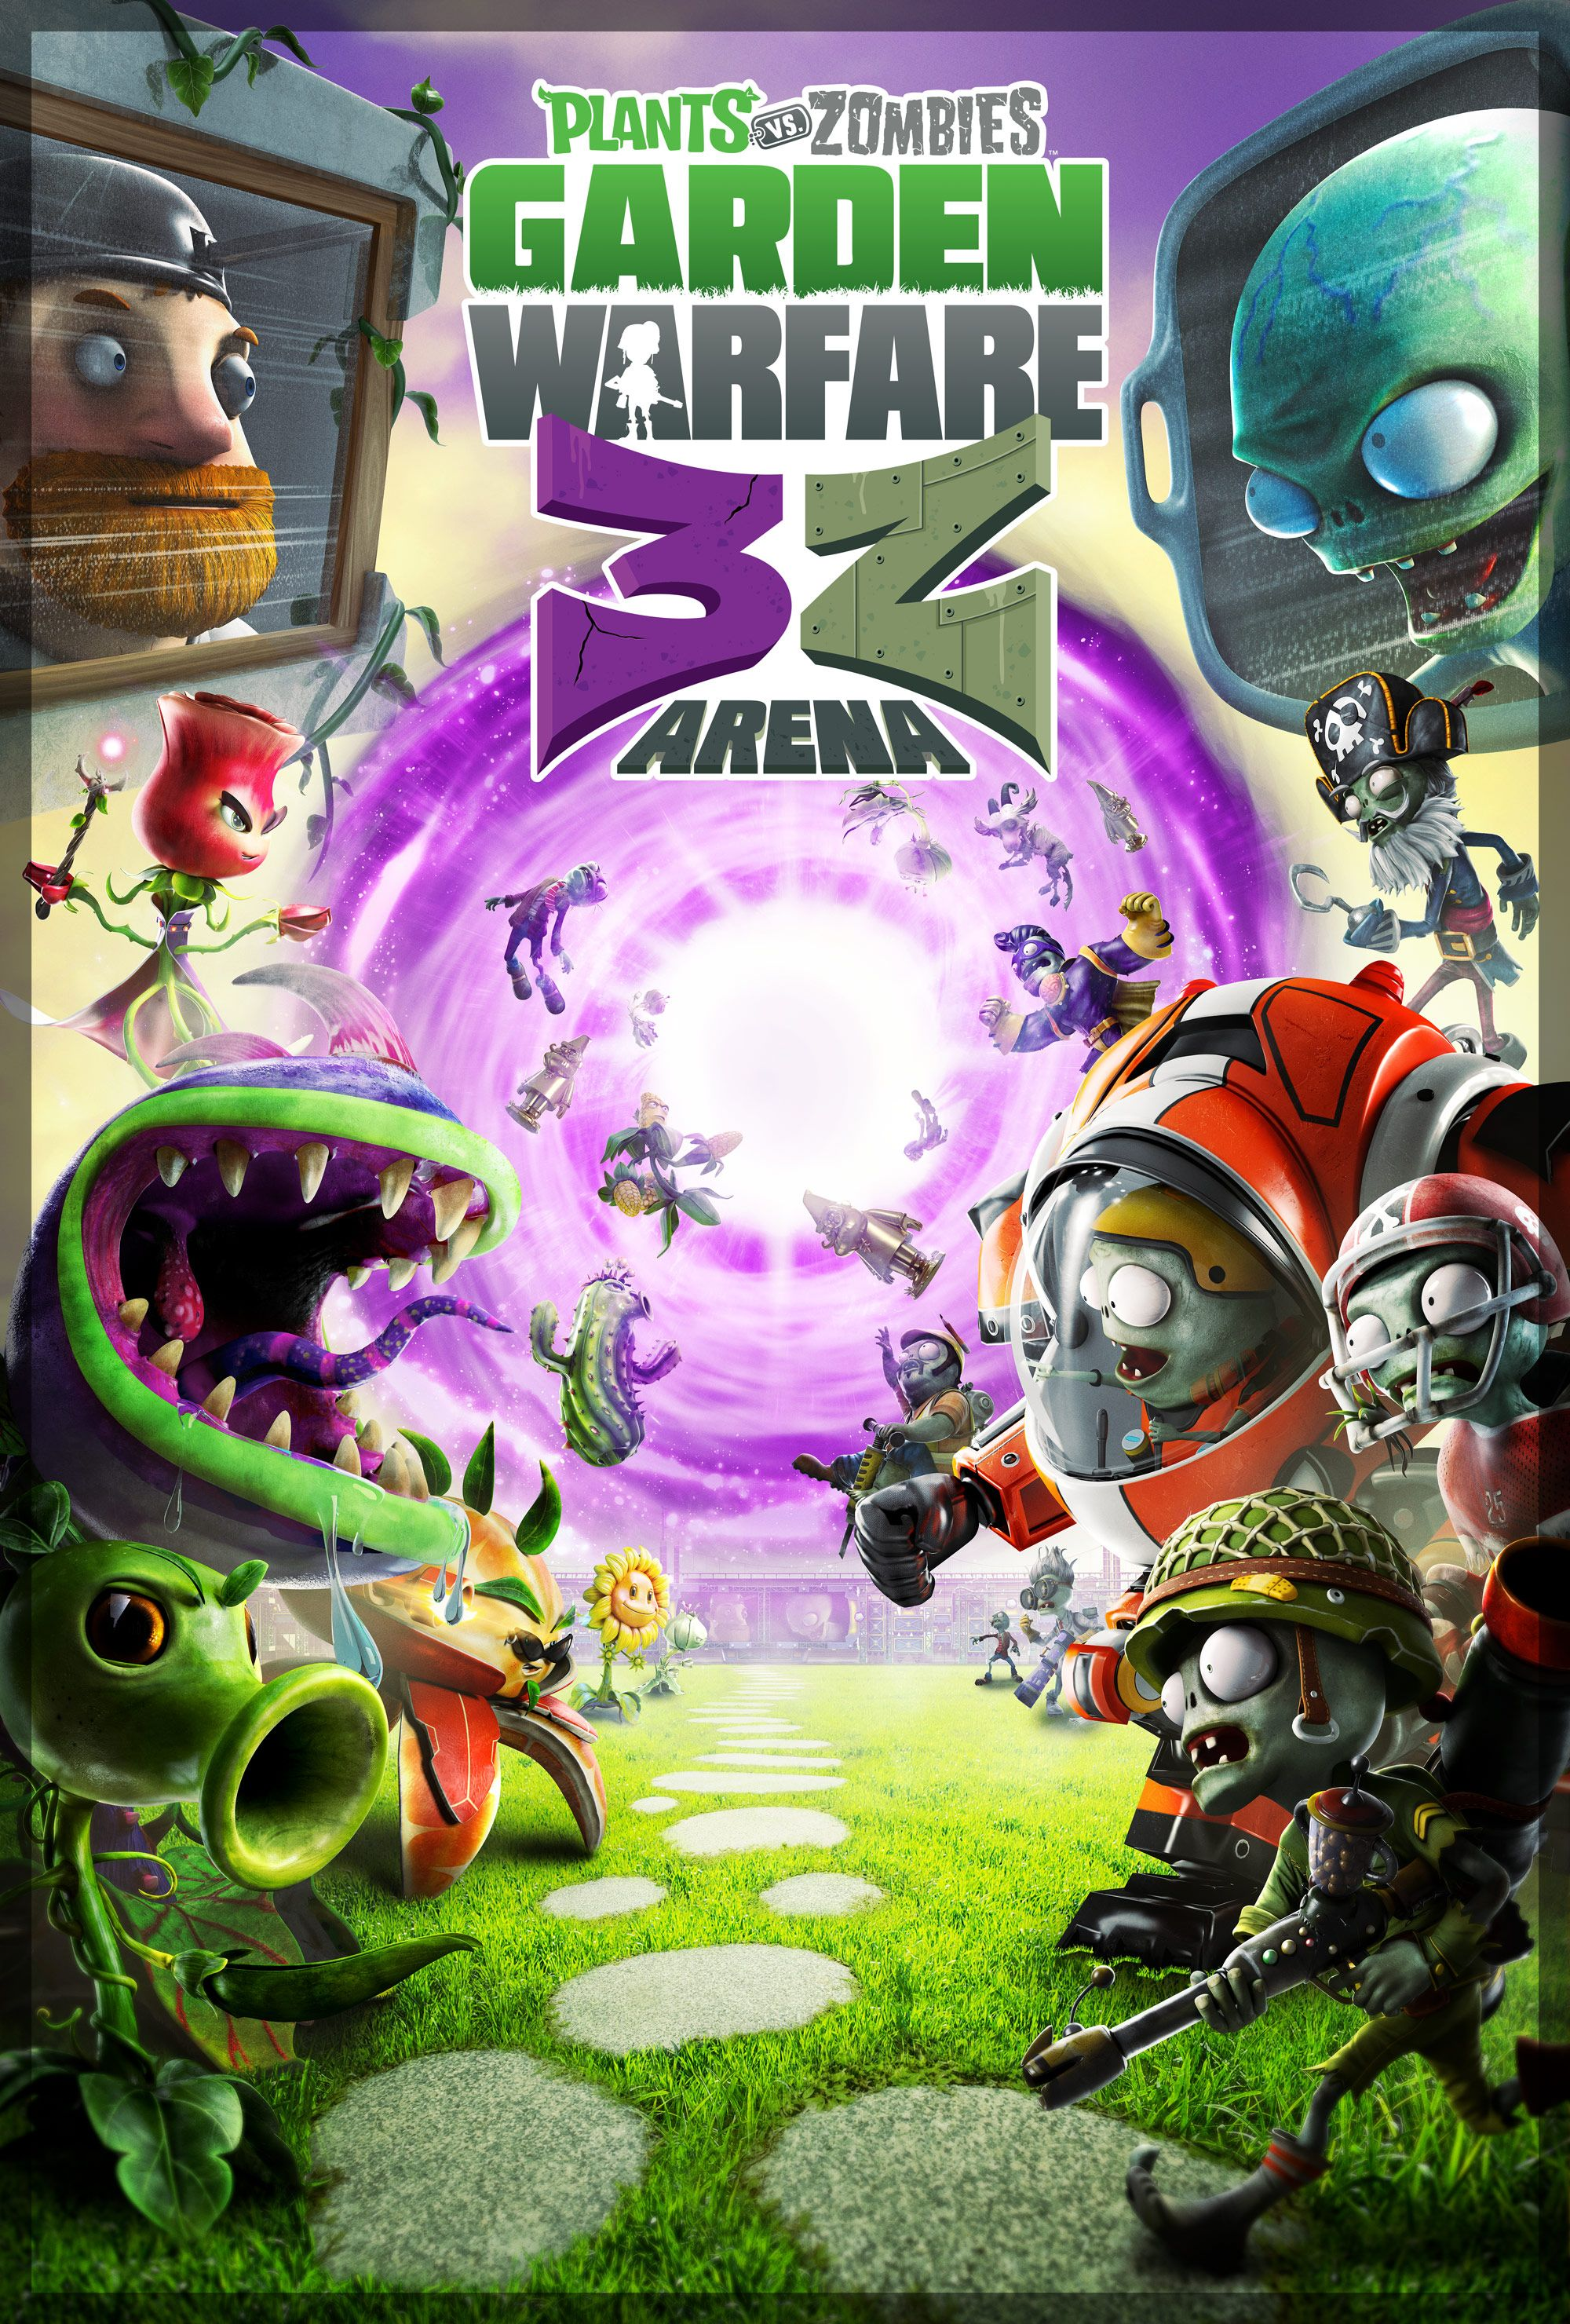 Plants vs. Zombies Garden Warfare 3